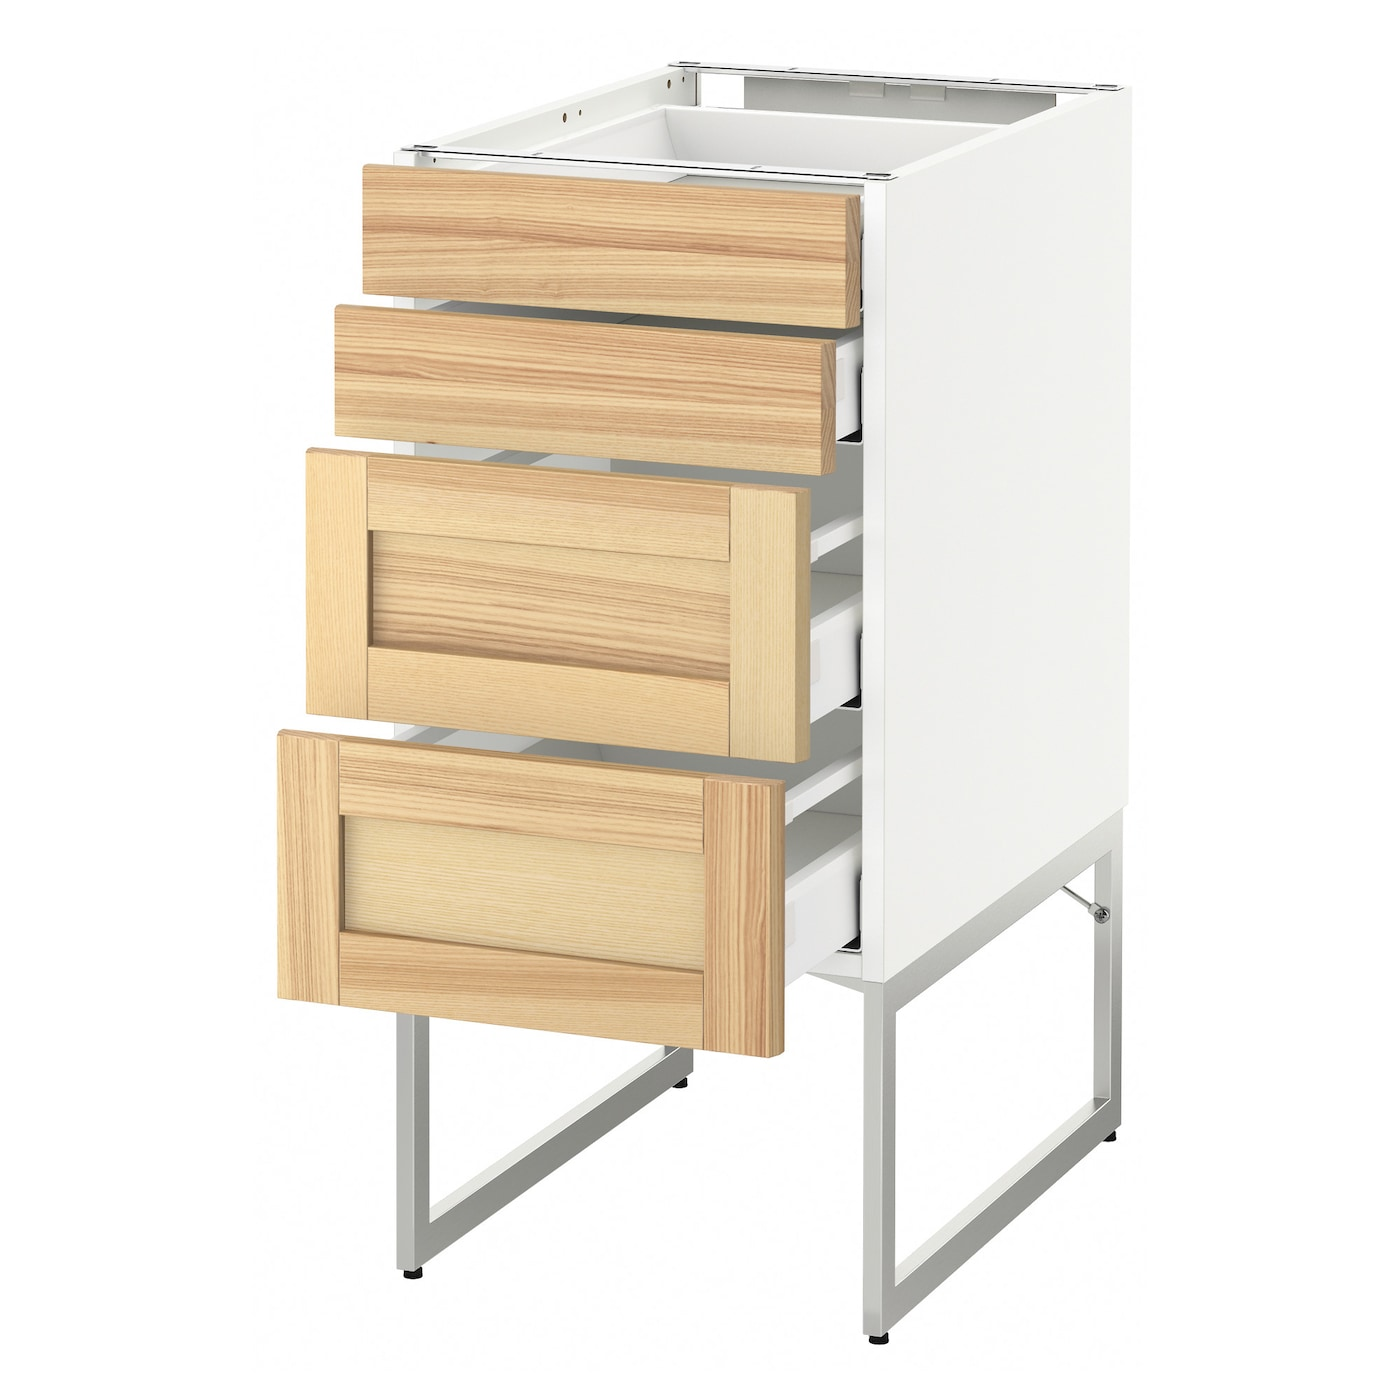 IKEA METOD/MAXIMERA base cab 4 fronts/2 low/2 md drwrs Smooth-running drawers with stop.